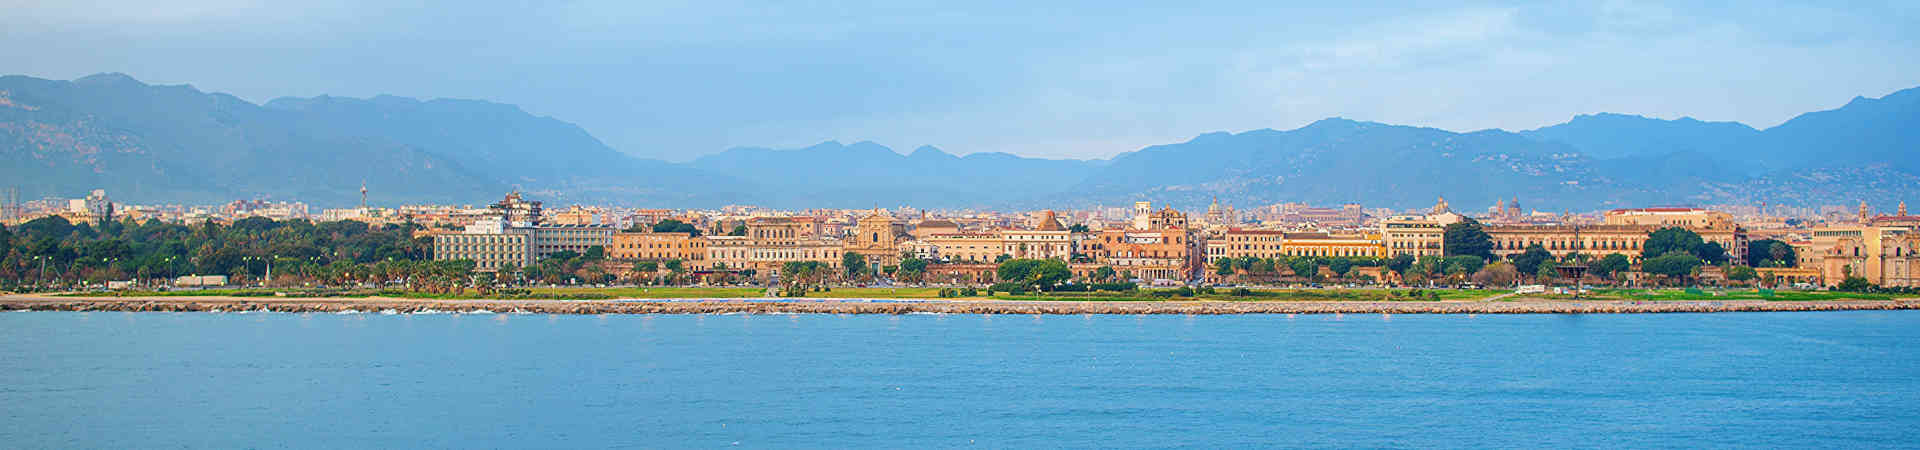 Resource image of the destination port Palermo for the ferry route Livorno - Palermo